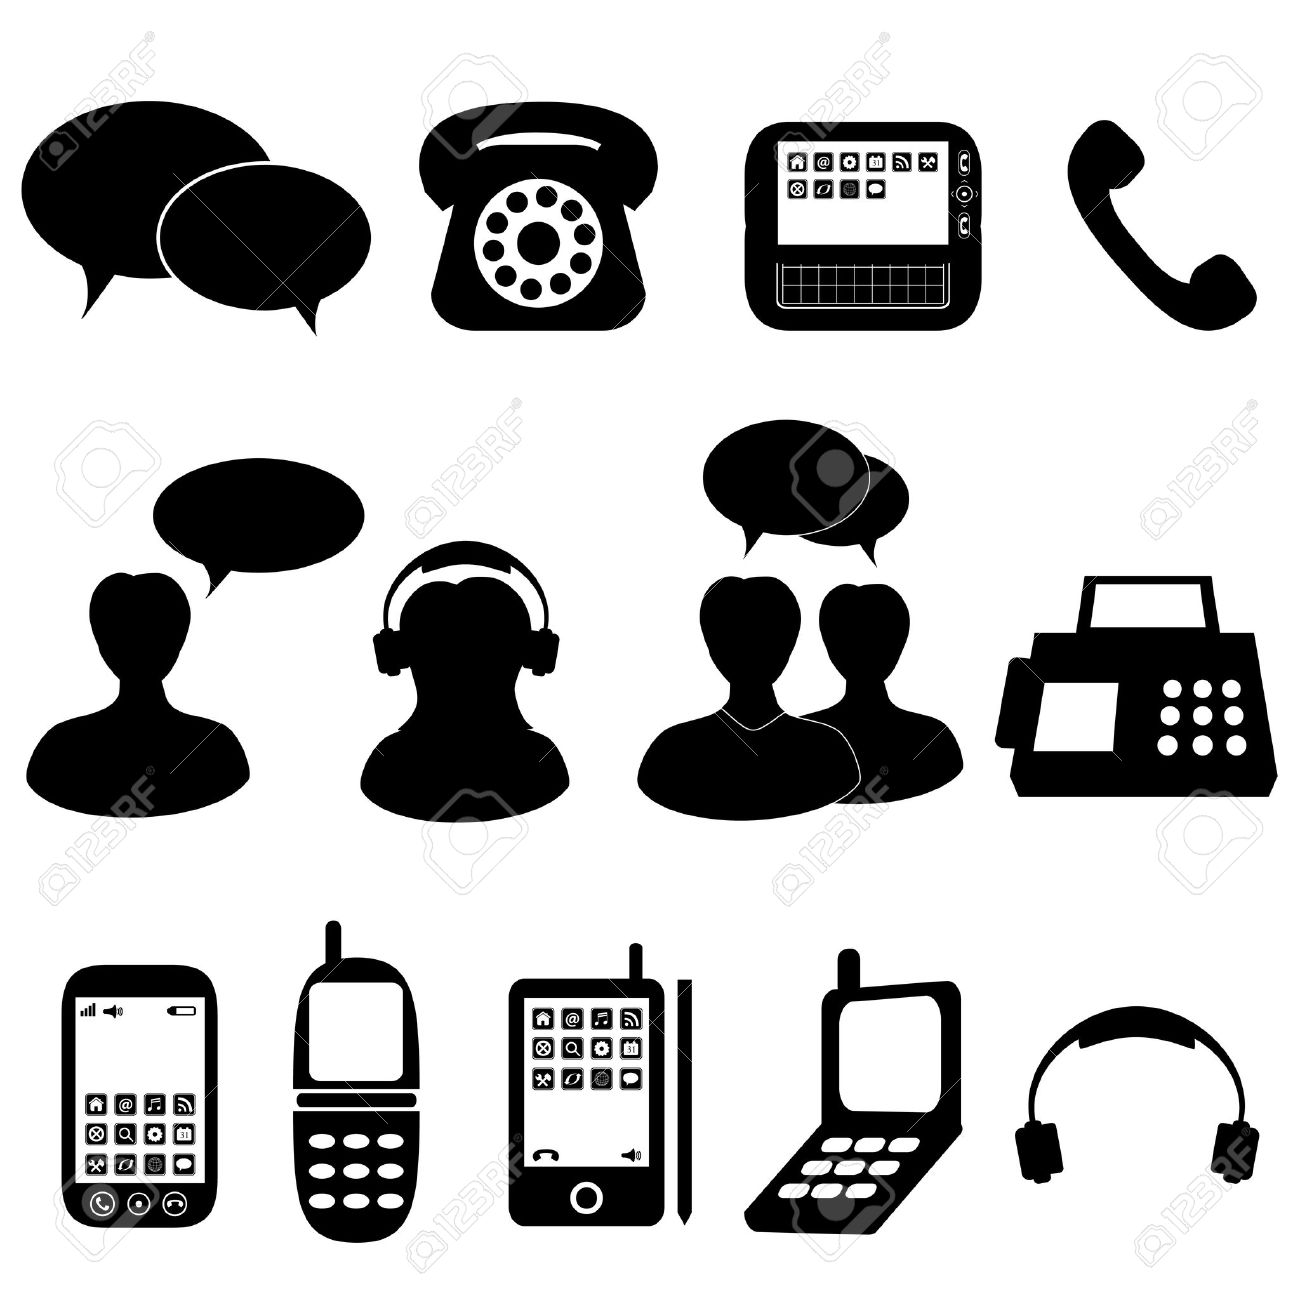 Telephone And Communication Icons And Symbols Royalty Free.